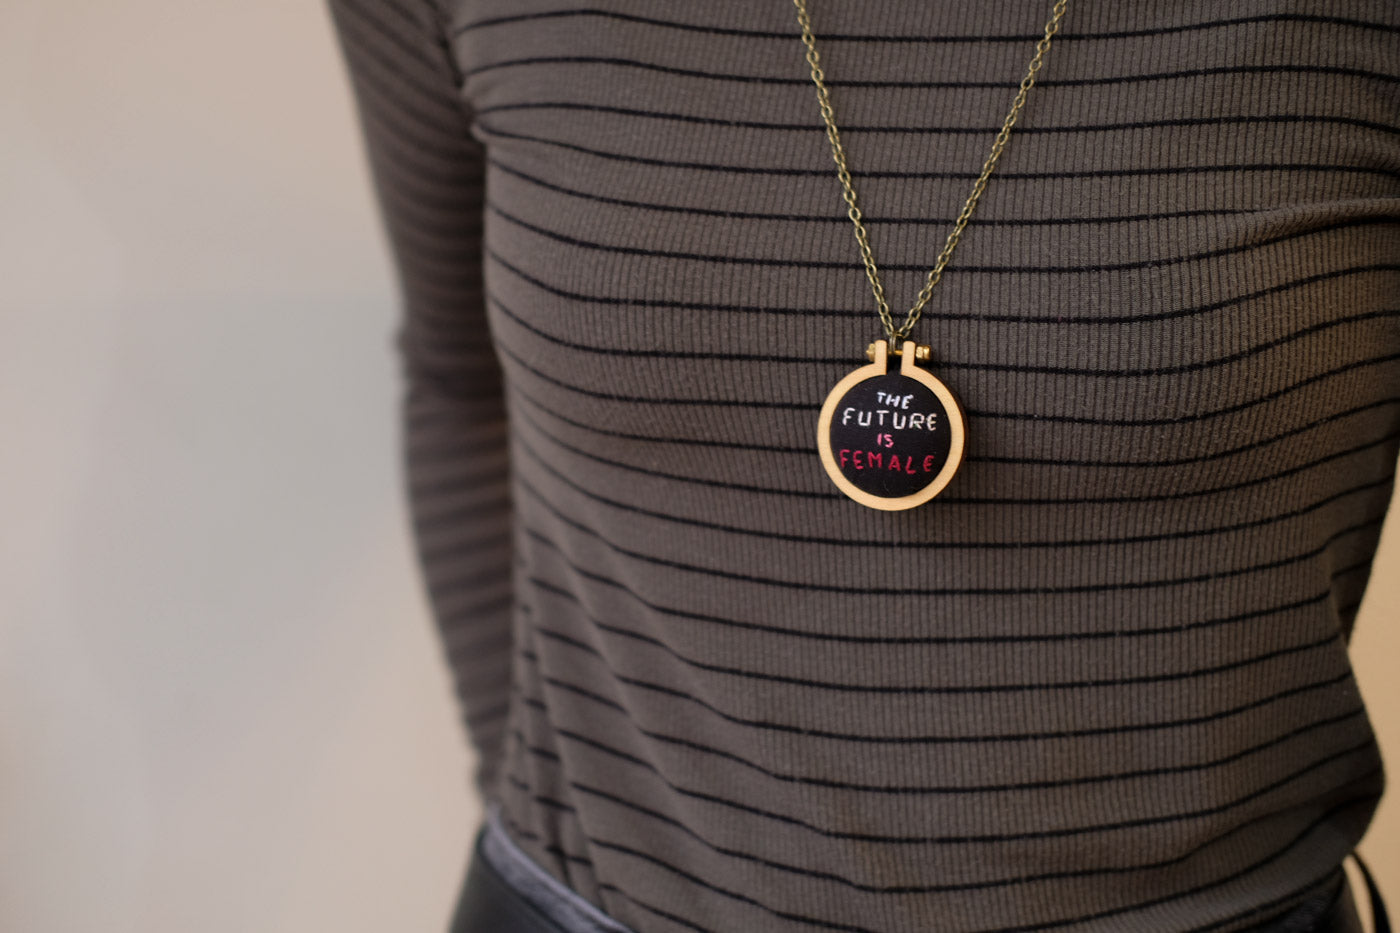 The Future is Female Necklace